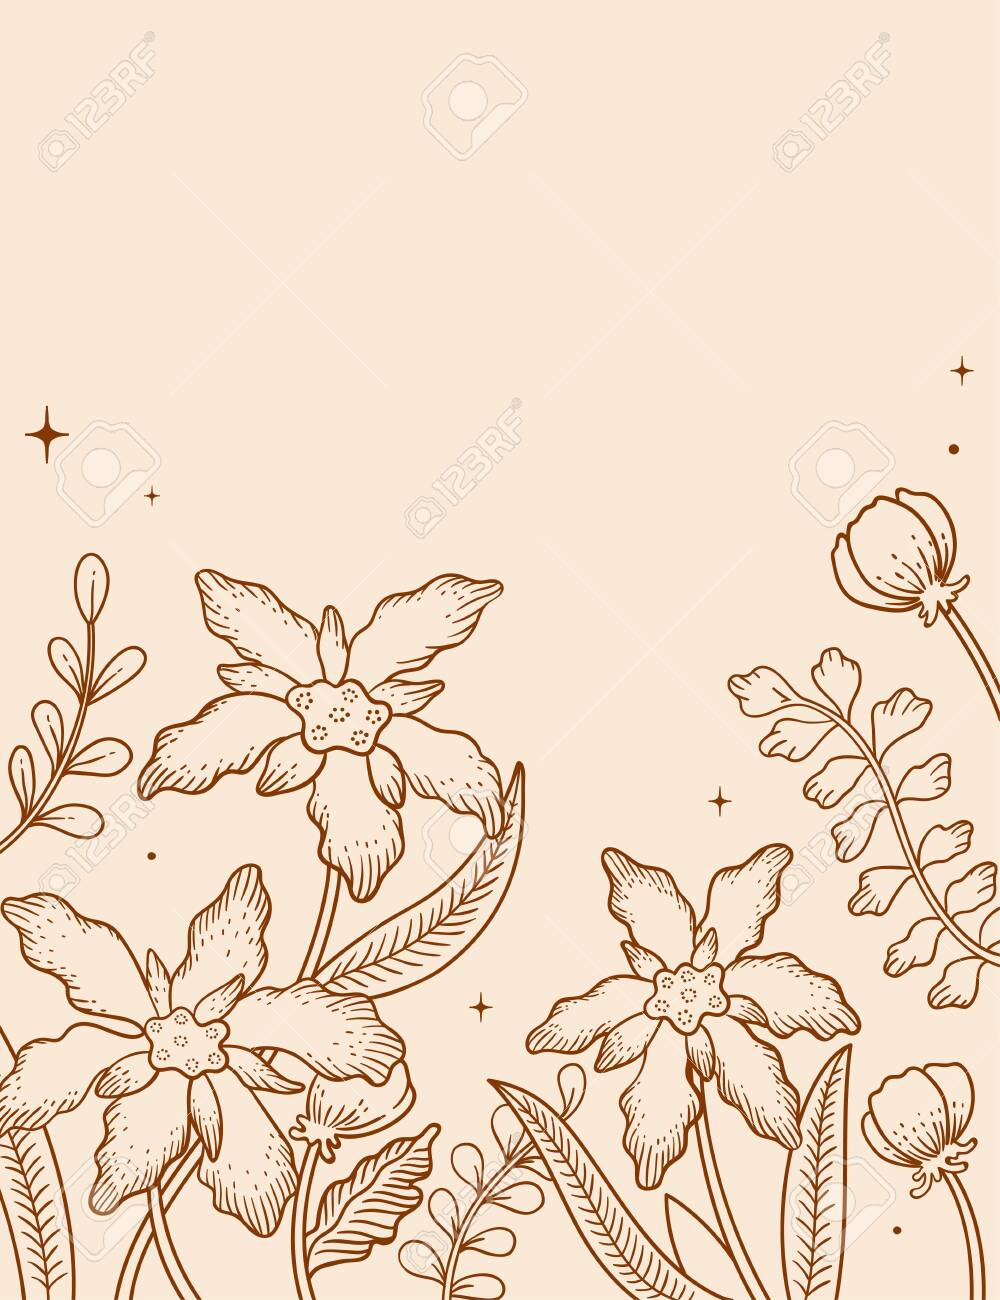 White Batik Background : white, batik, background, Handdrawn, Illustration, Vector, Graphic, Batik, Flower, Background, Royalty, Cliparts,, Vectors,, Stock, Illustration., Image, 141446024.